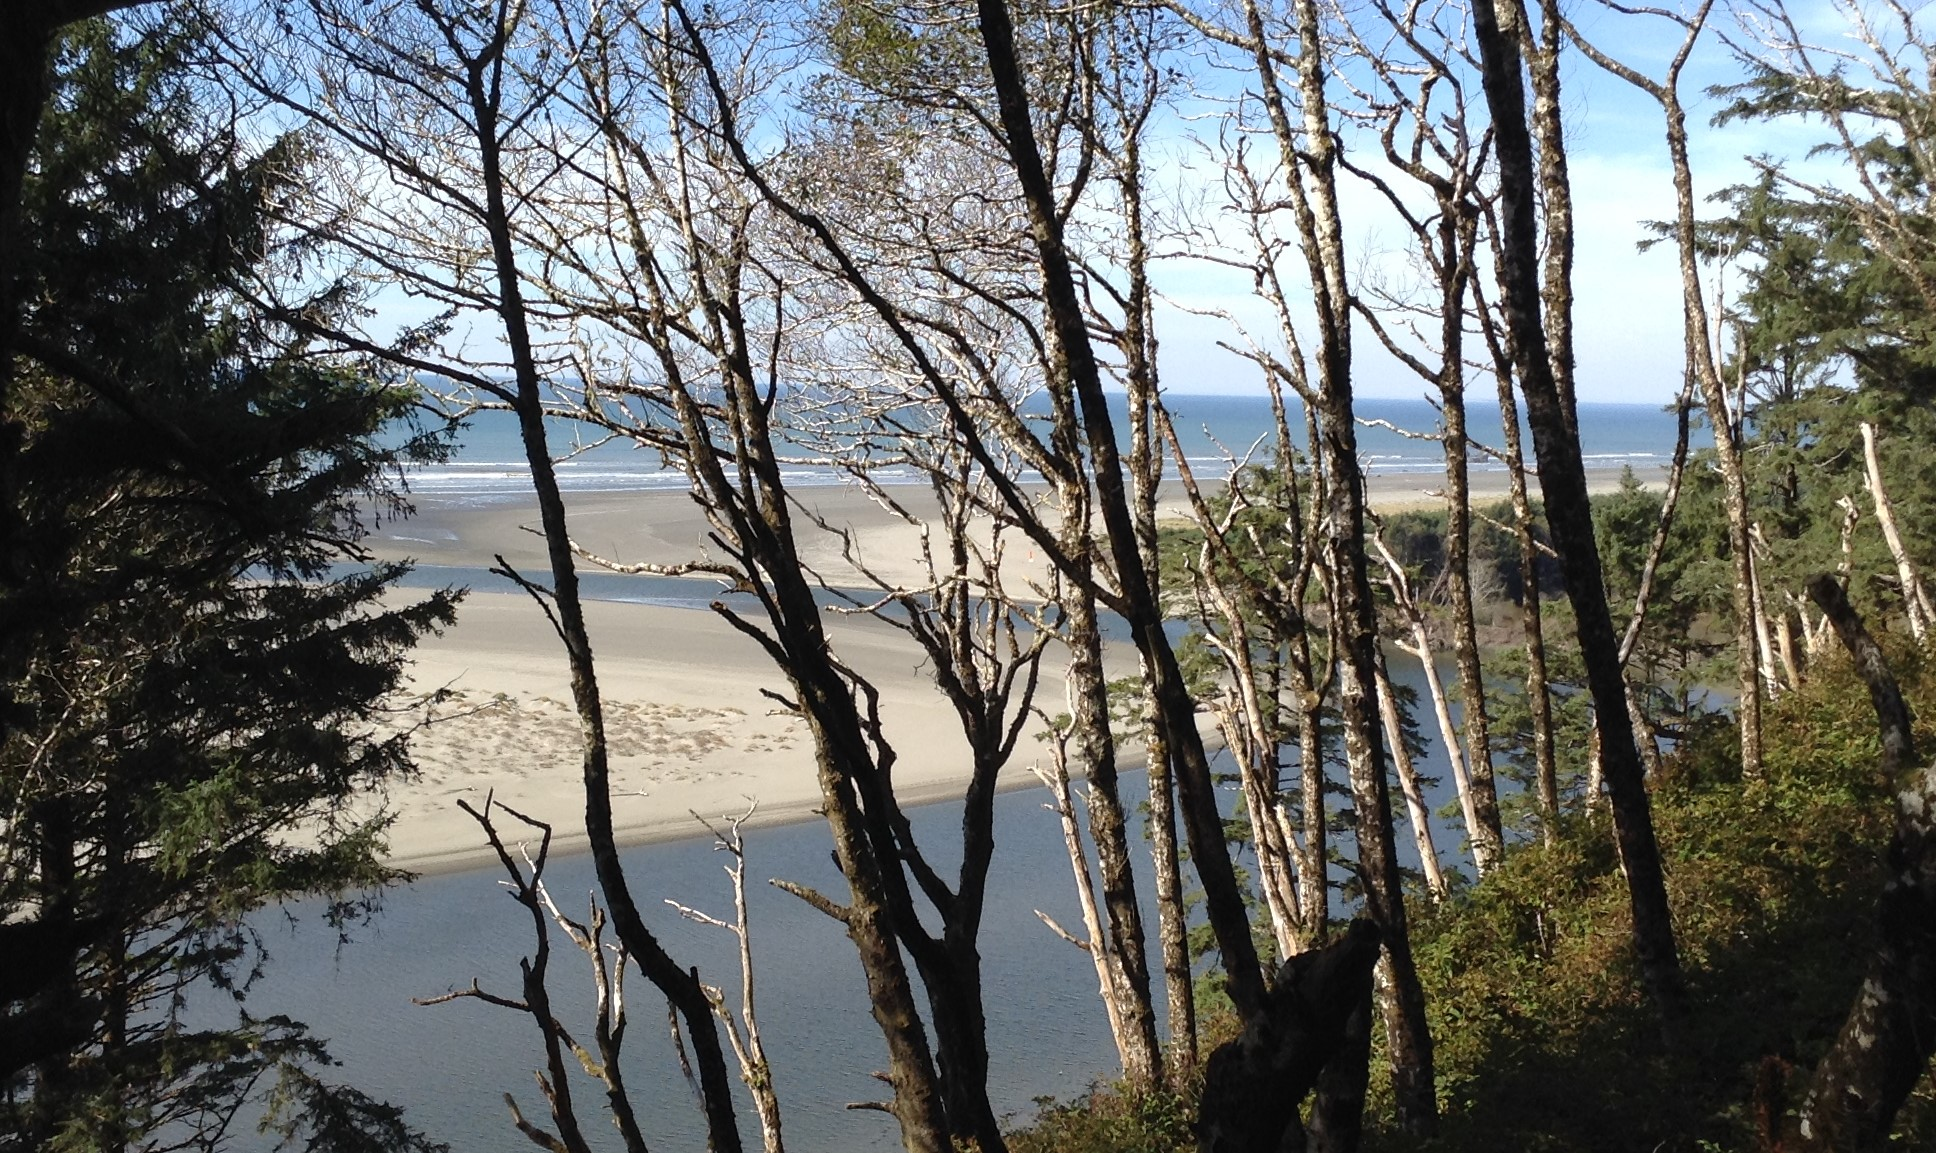 Peek a boo look at the Pacific Ocean in the Pacific Beach area of Washington's Coastline. #graysharborbeaches #beachscene